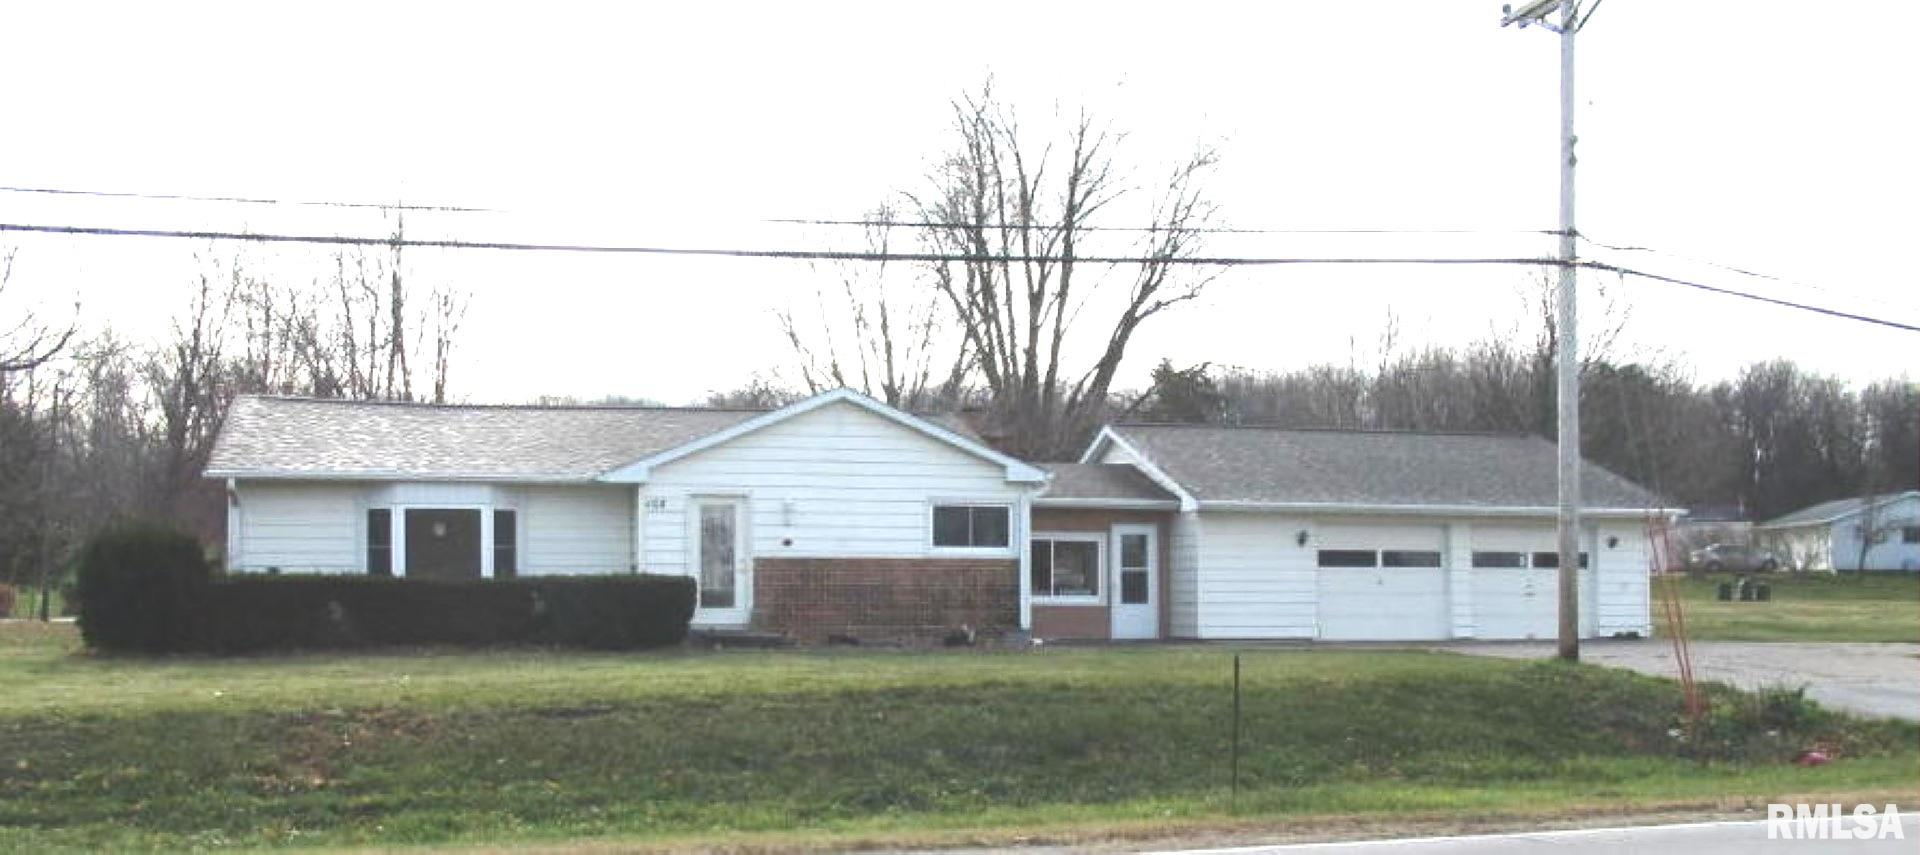 408 6TH Property Photo - Andalusia, IL real estate listing